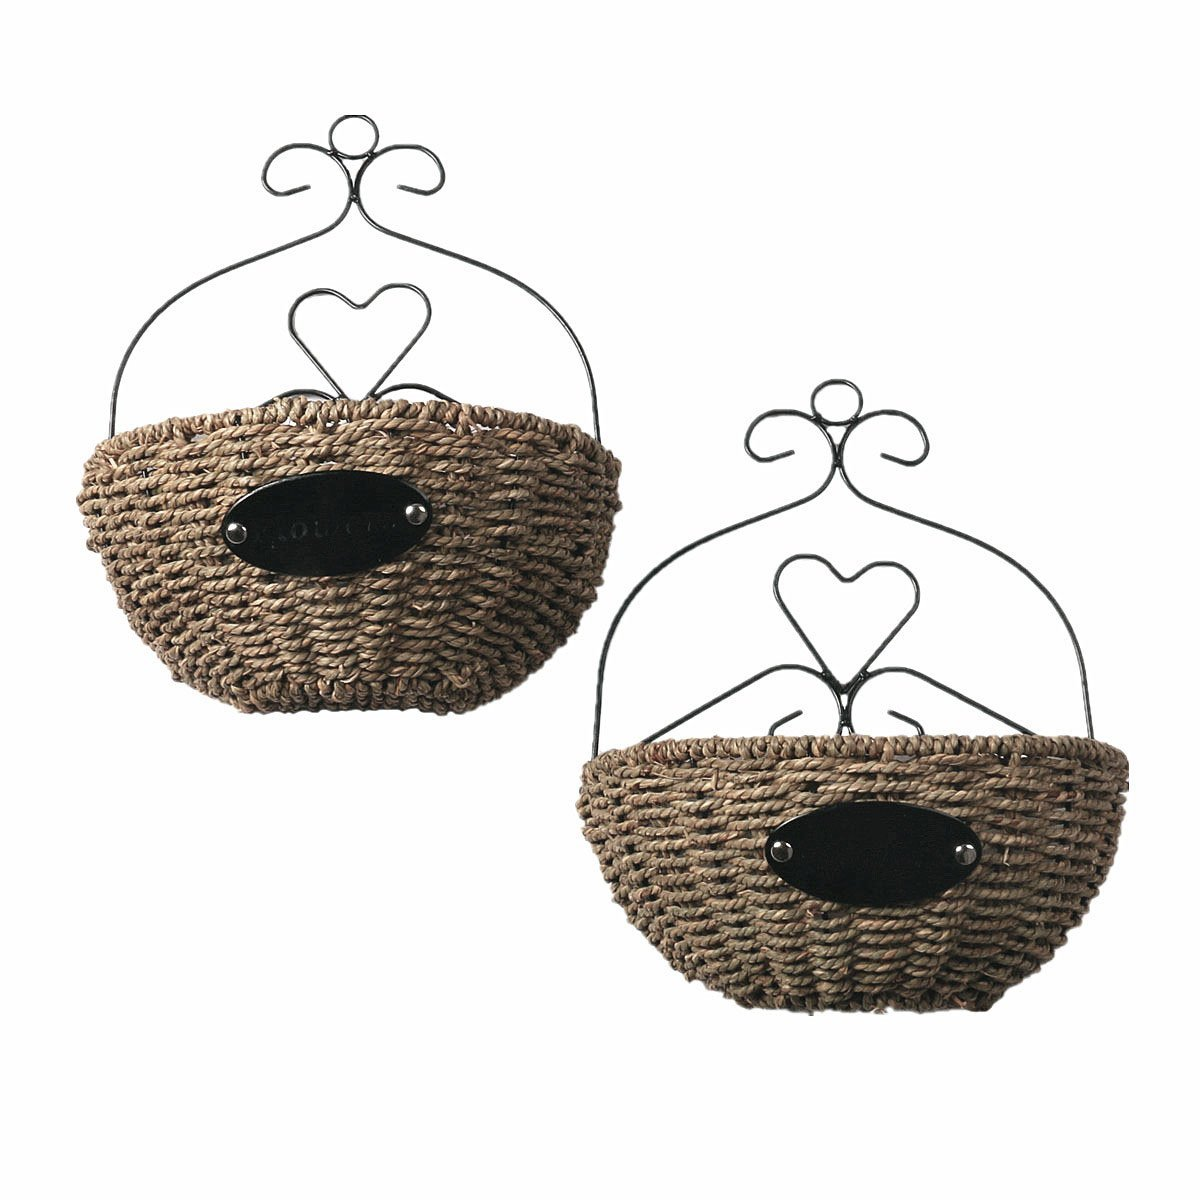 "Hihome 2 Pack Growers Series Hanging Planter Basket Handmade Straw Woven Flower Hanger Garden Decoration Outdoor Watering Hanging Baskets 12 Inch Half Round Hanging Baskets (12"" Half-Round)"